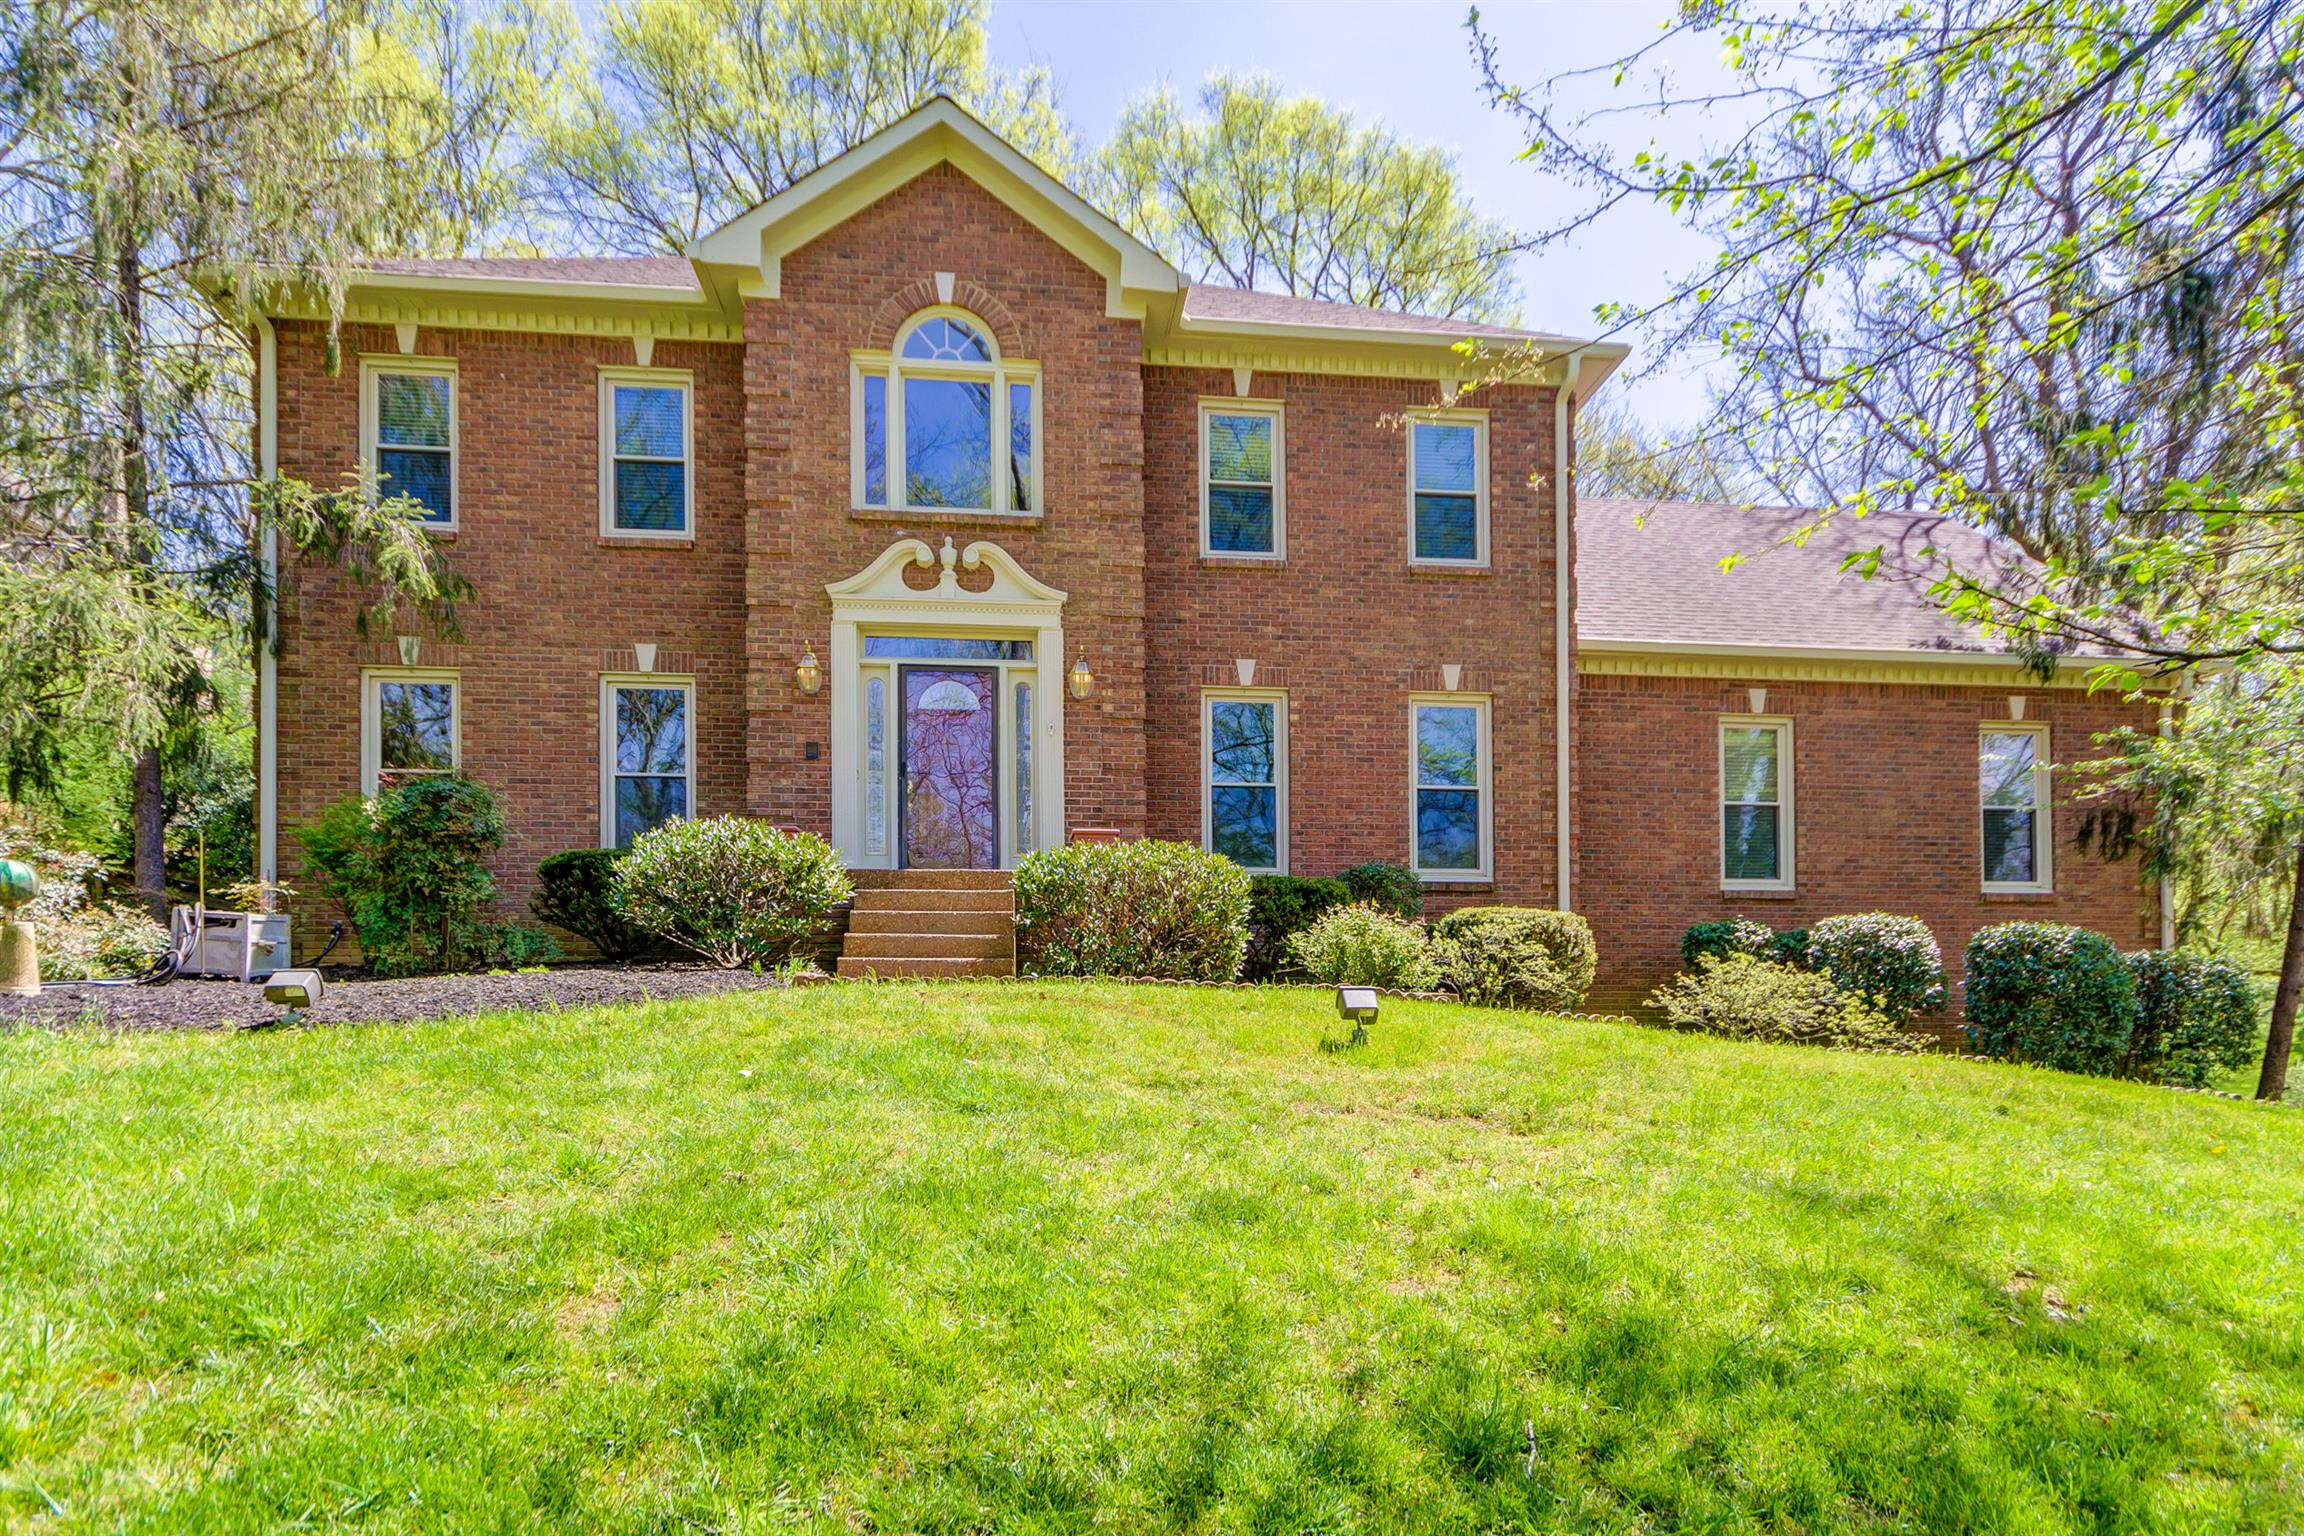 1175 Cross Creek Dr, Franklin in Williamson County County, TN 37067 Home for Sale